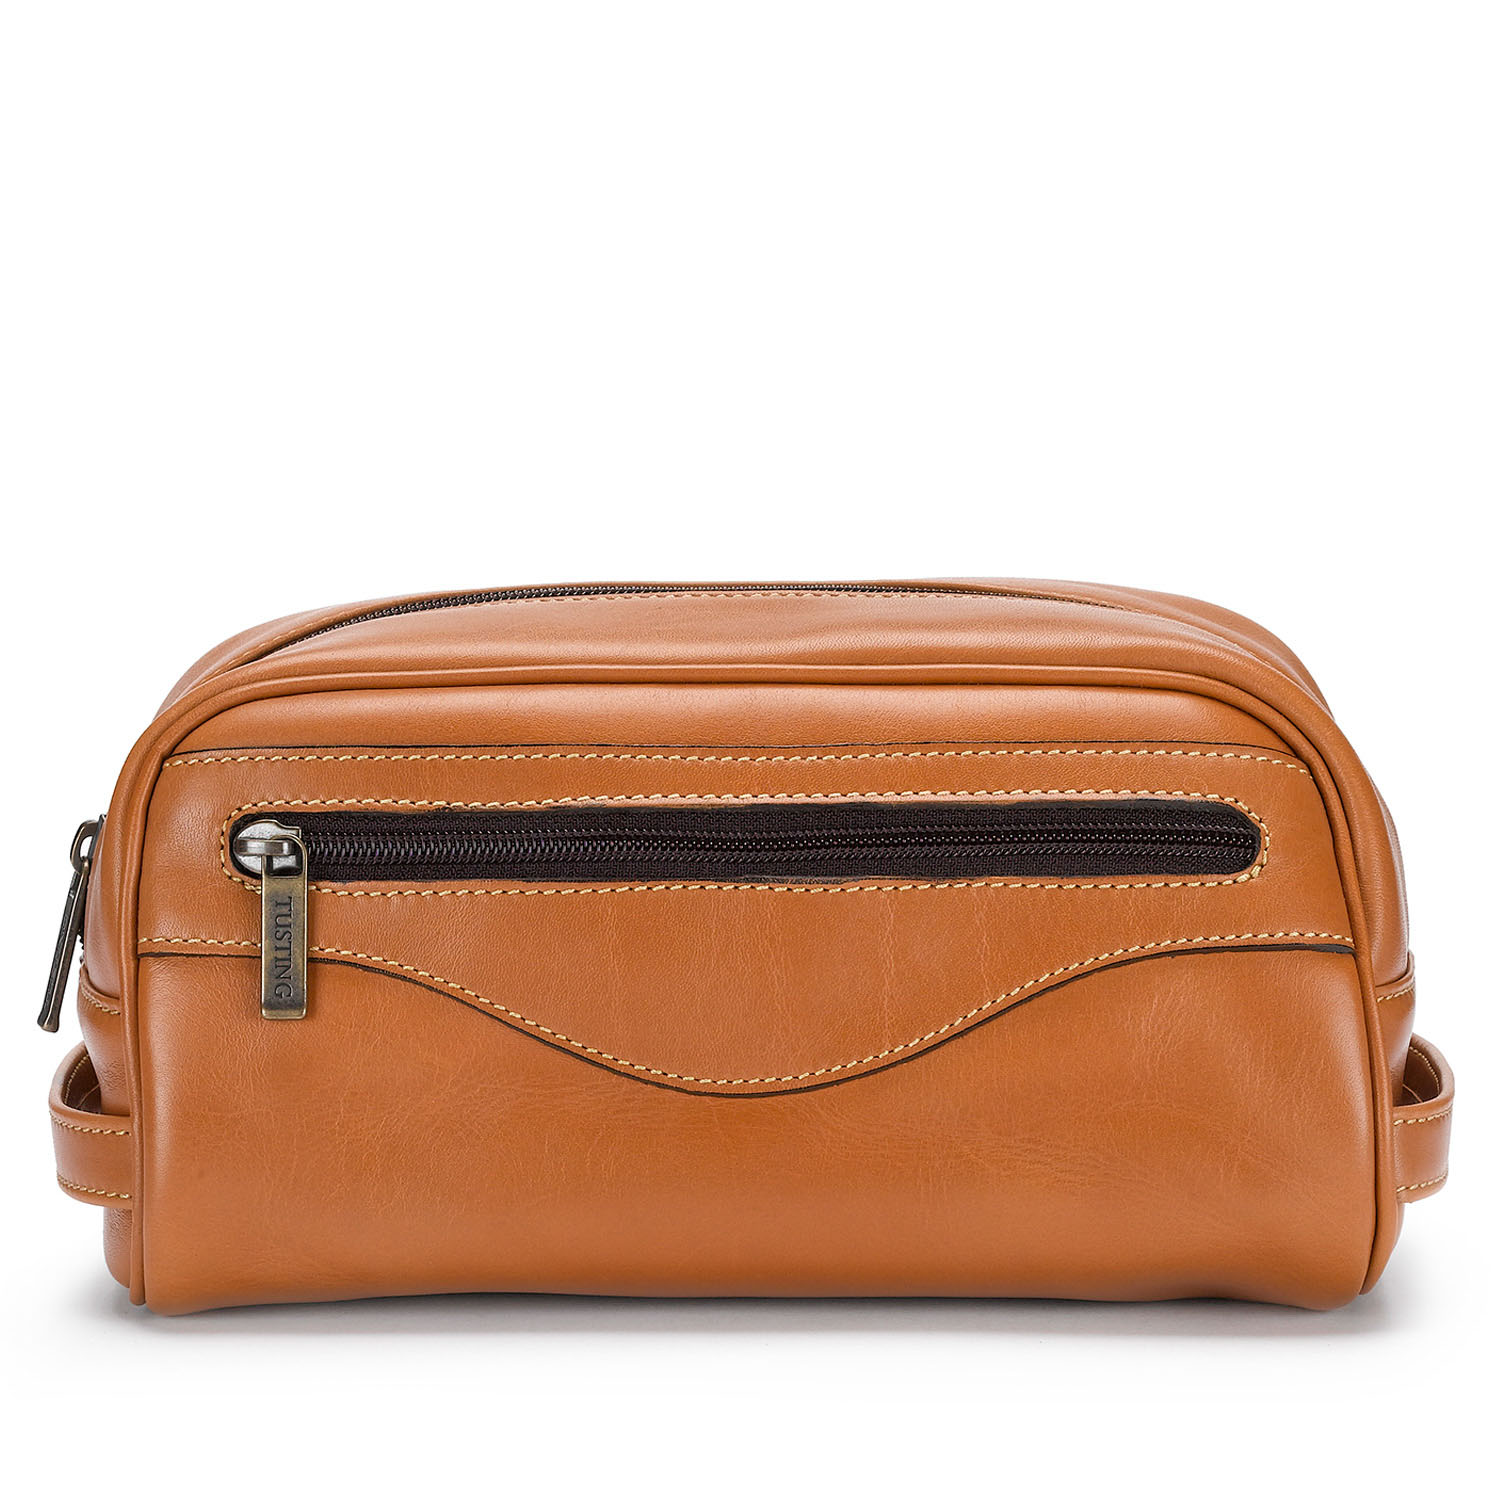 Tusting Leather Washbag in Tan Leather